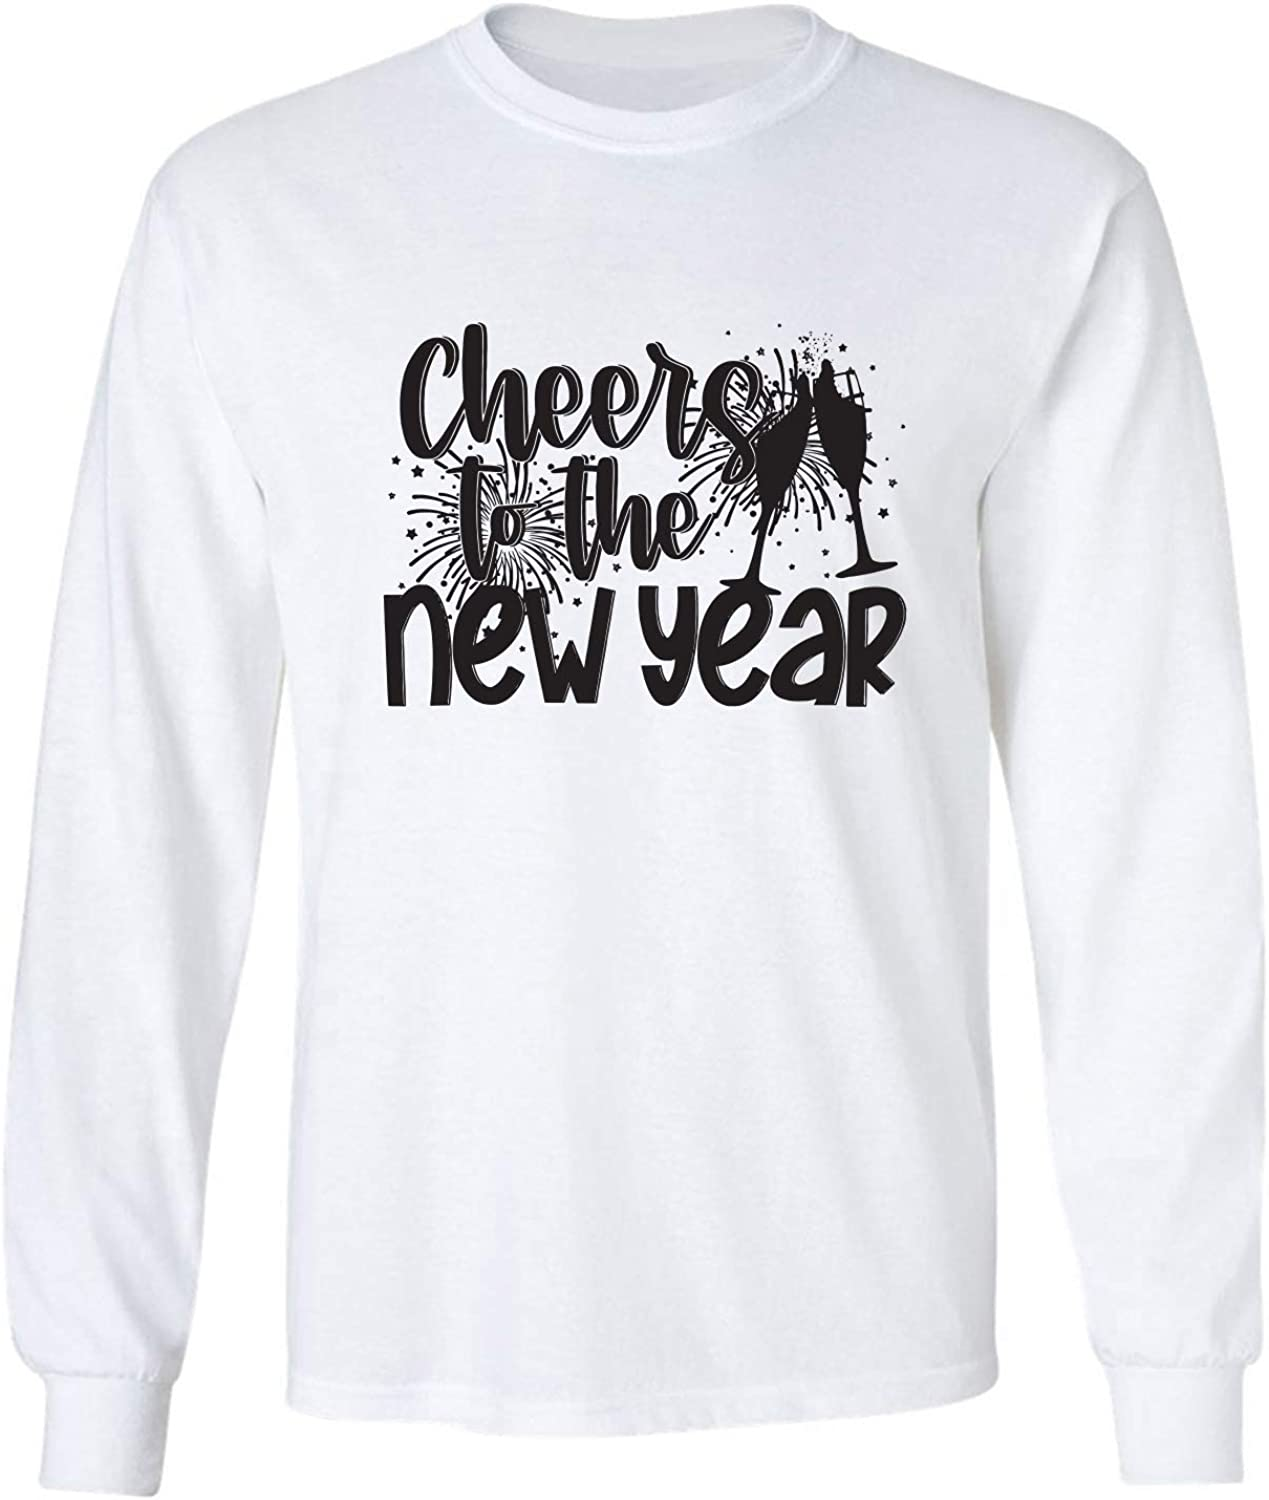 Cheers to The New Year Adult Long Sleeve T-Shirt in White - XXXXX-Large